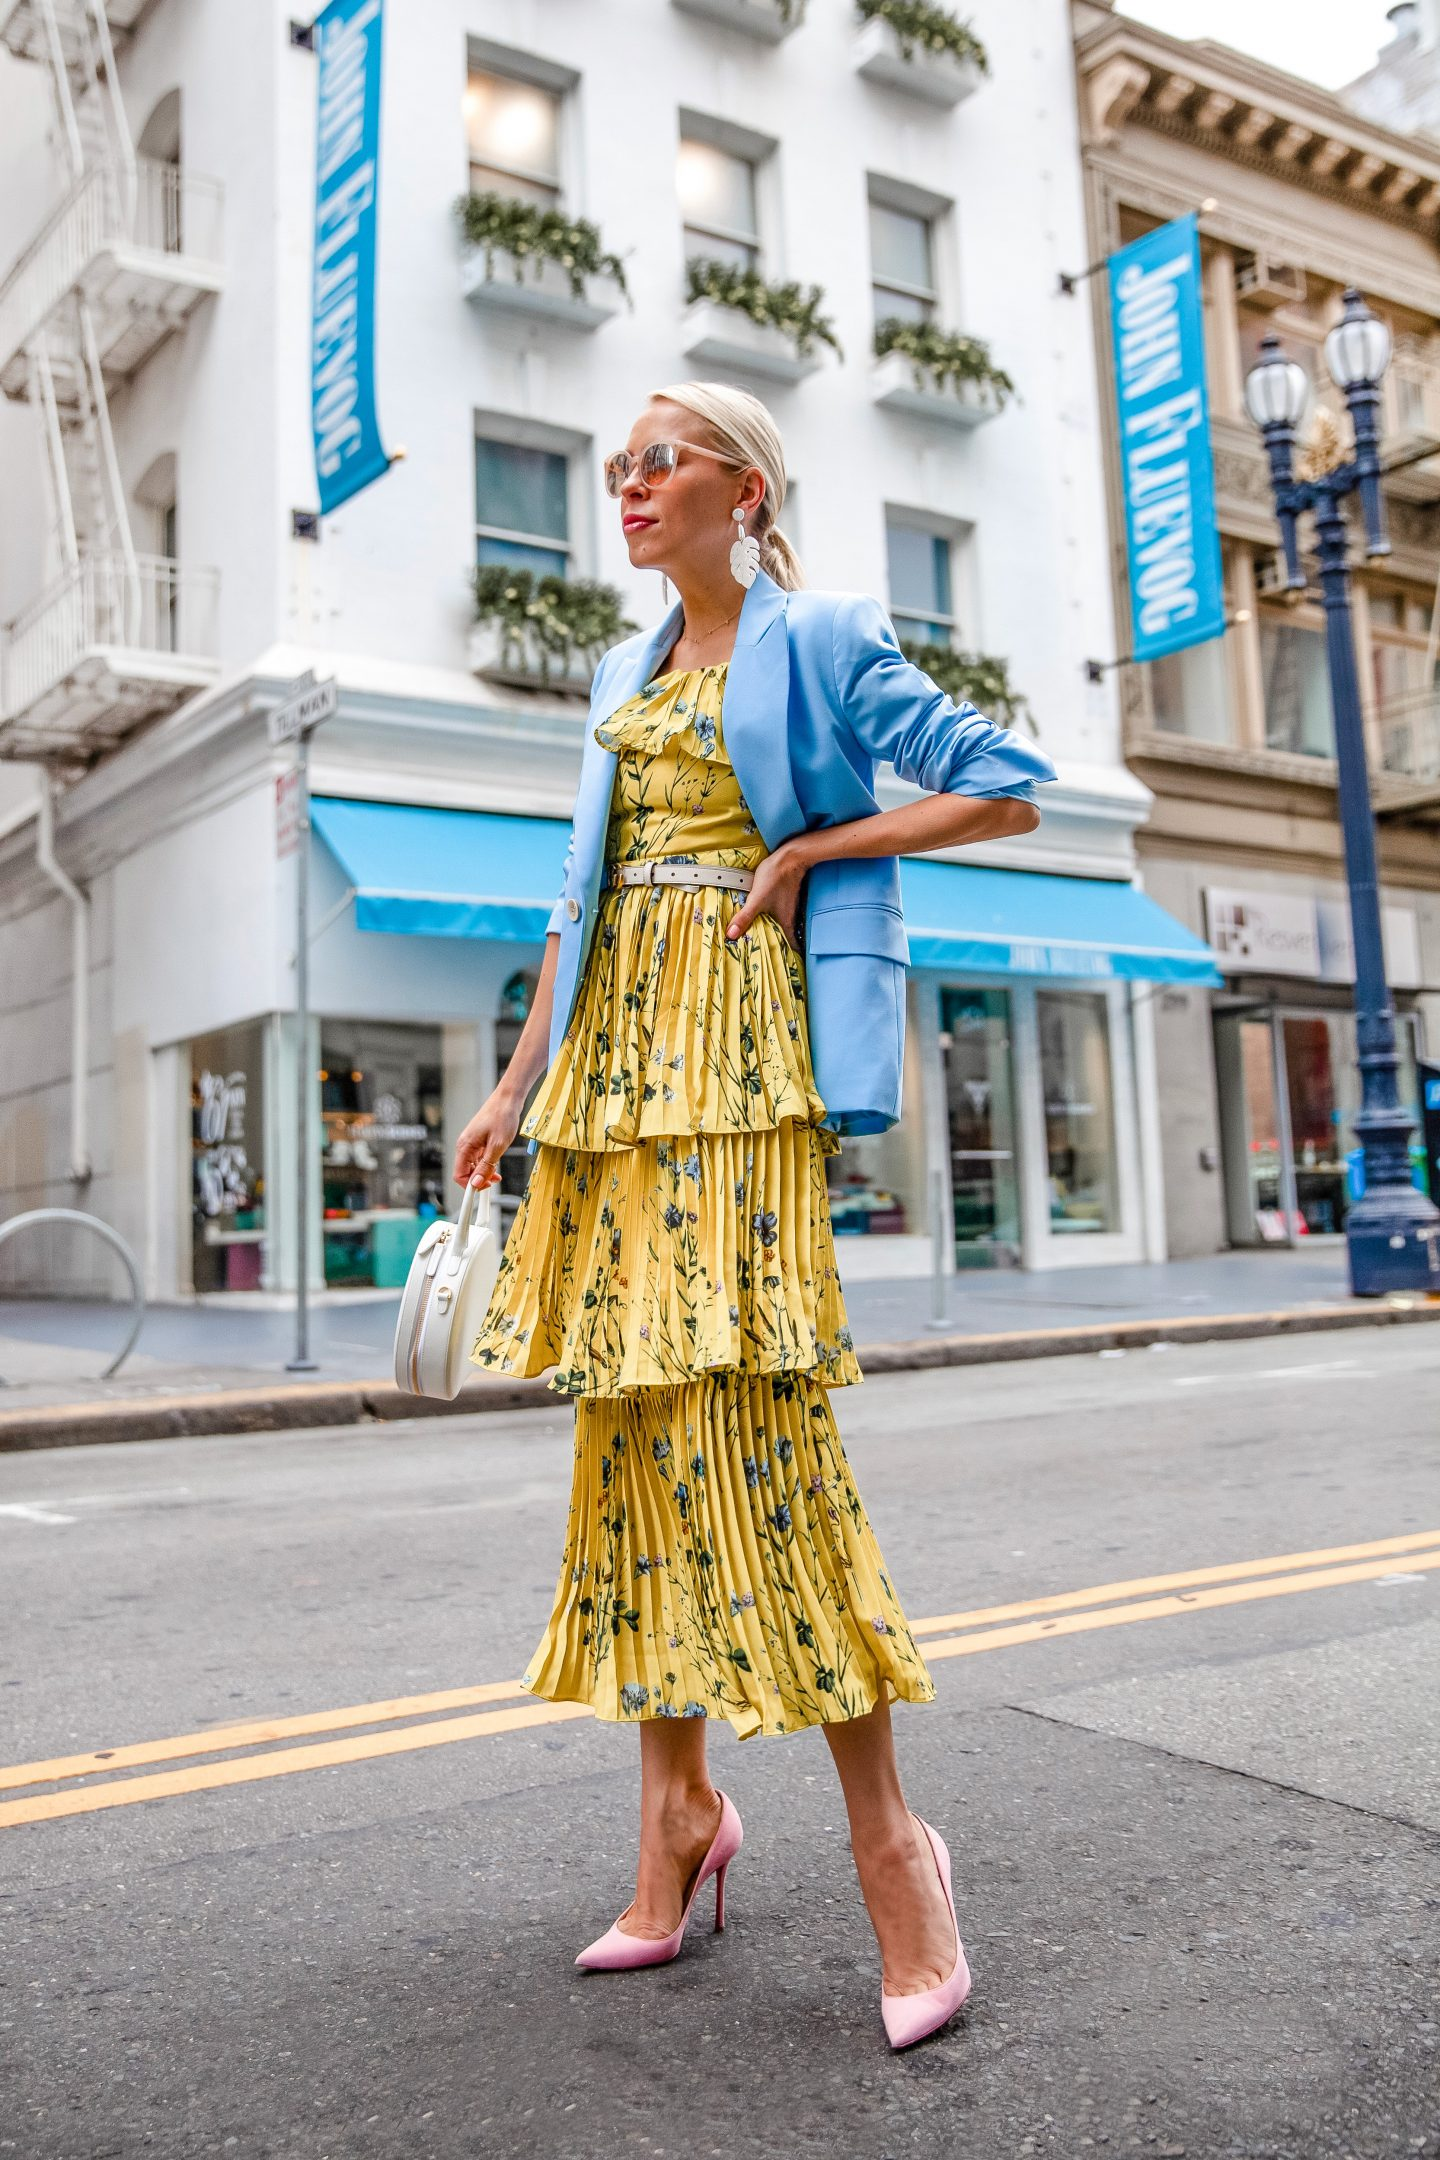 One Floral Maxi Dress from Day to Night featured by top US fashion blog, Lombard and Fifth: image of a woman wearing an AQUA maxi floral dress, TOPSHOP light blue blazer, Christian Louboutin suede heels, Anthropologie pearl earrings, and Mansur Gavriel crossbody bag